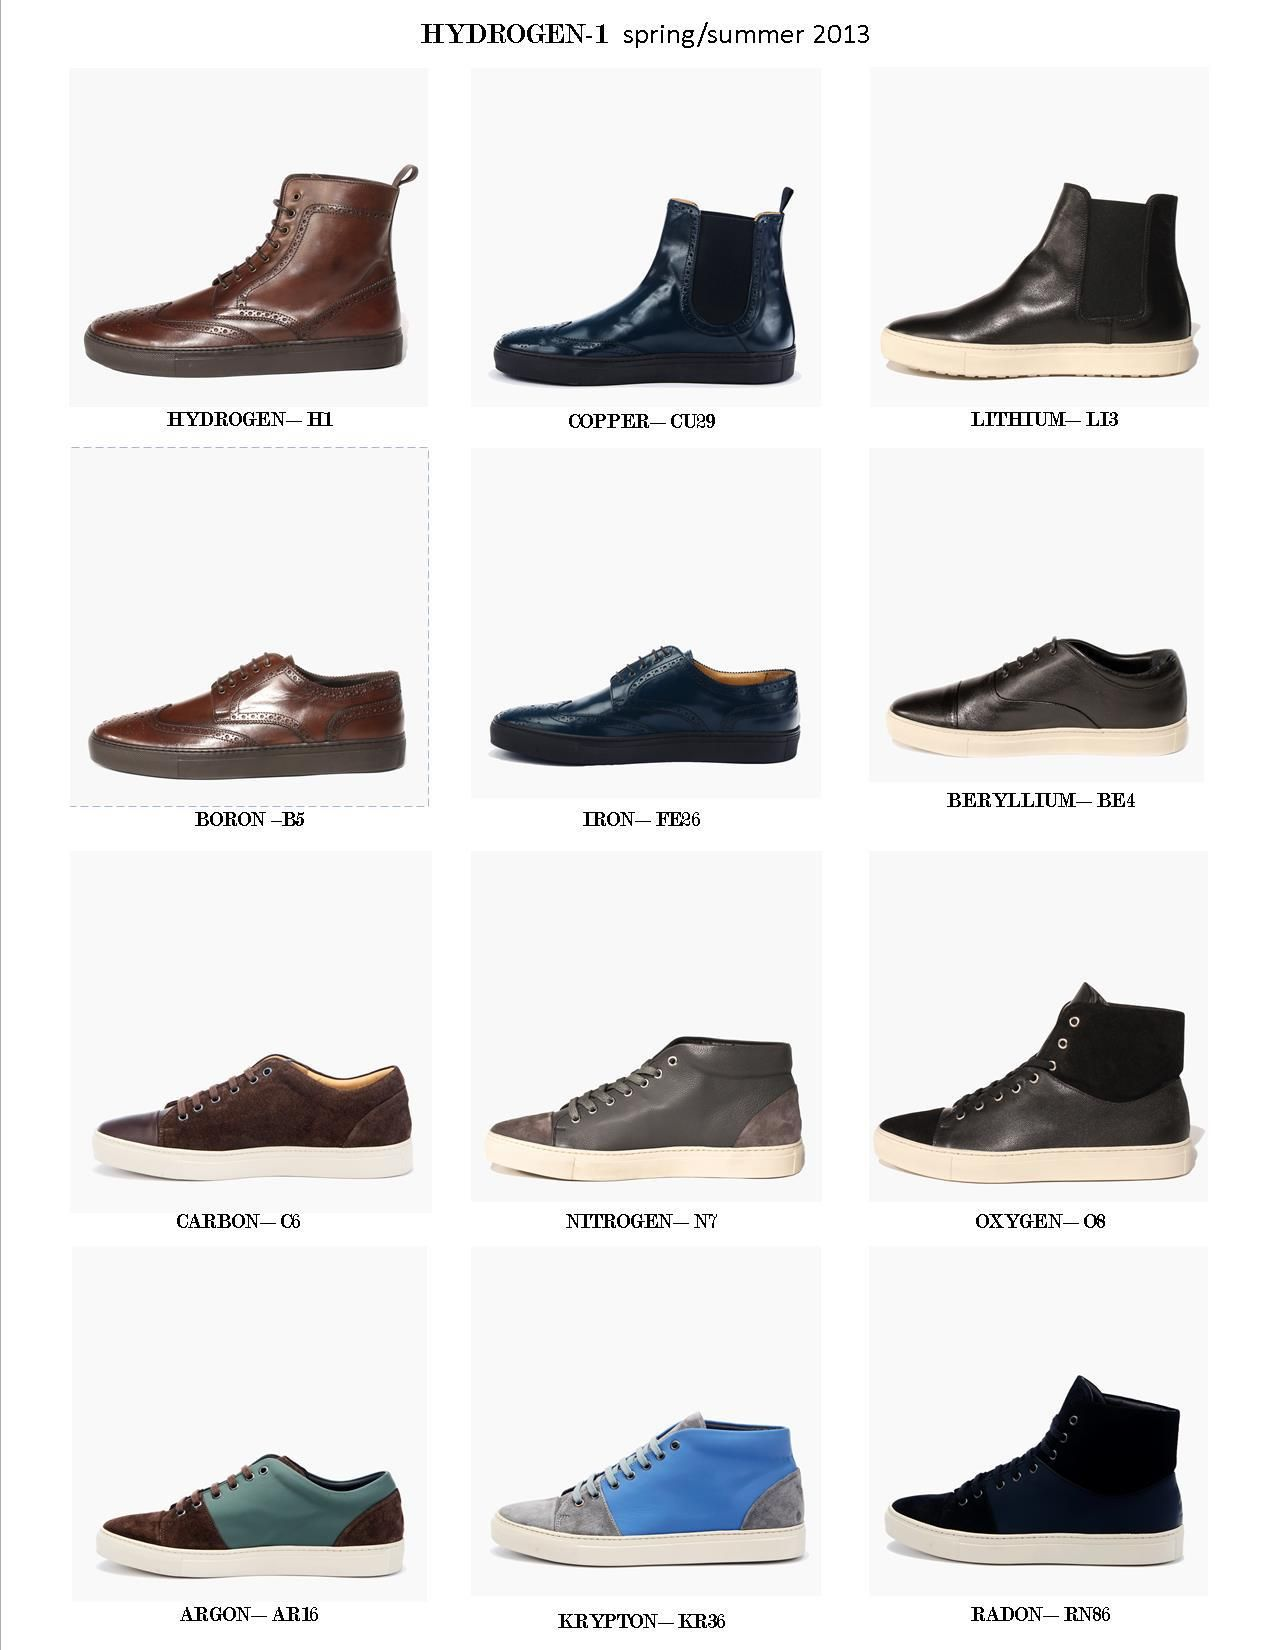 Hydrogen-1 2013 line up :) Italian Leather + Sneaker comfort. Which one's your favorite? #kickstarter